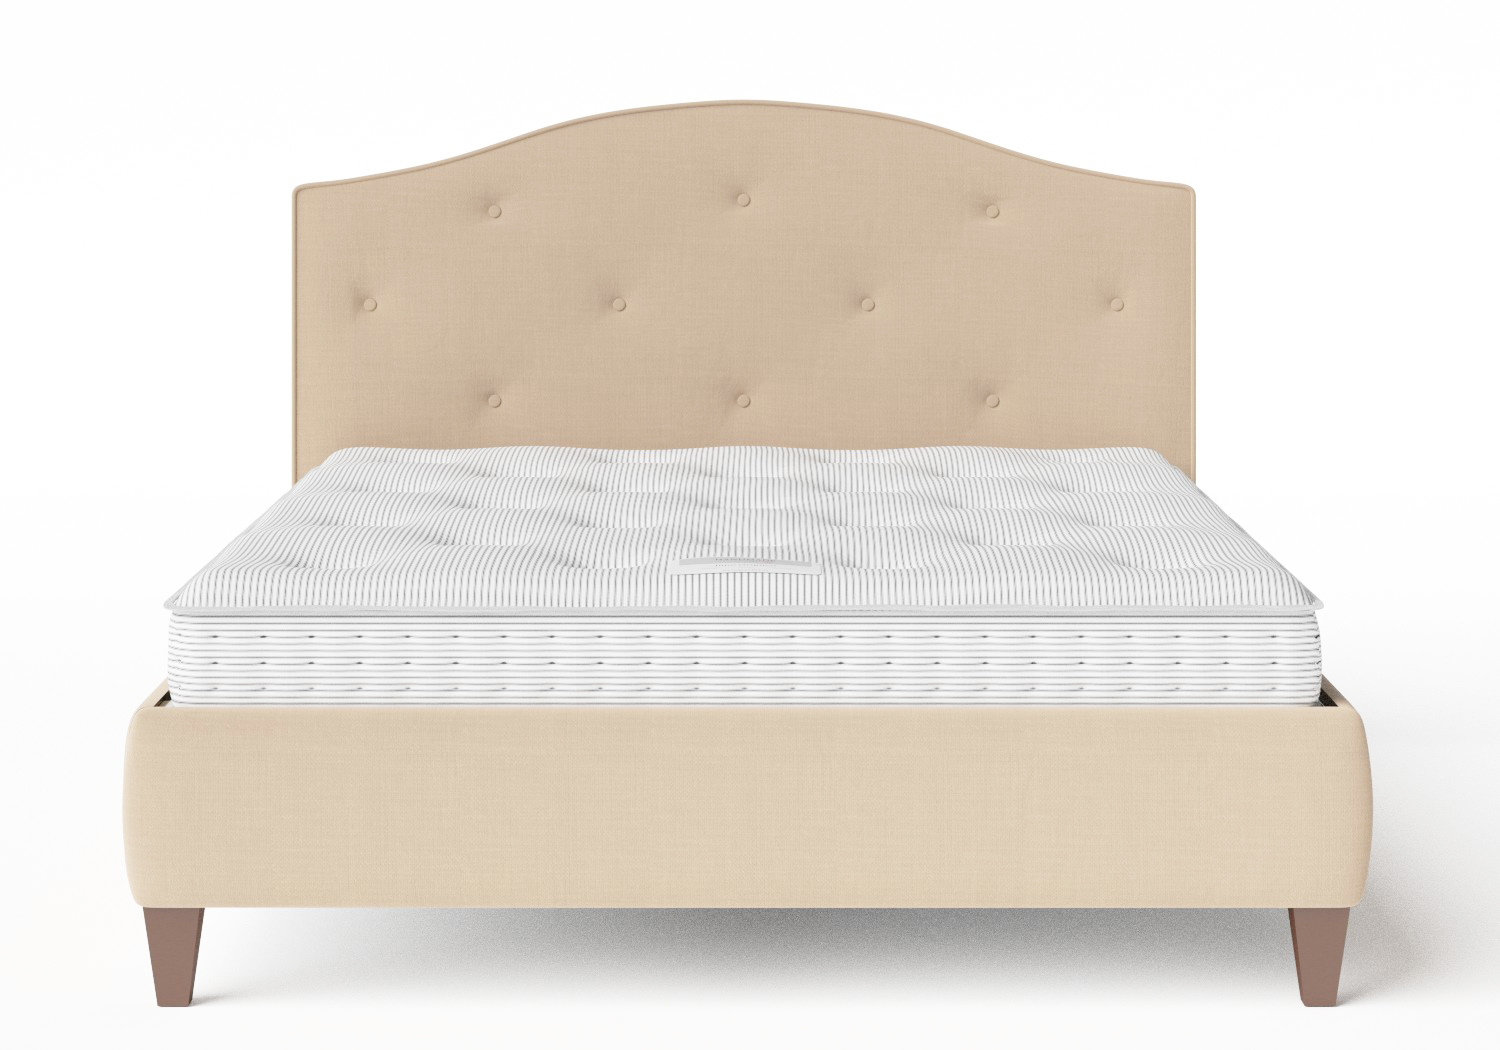 Daniella Upholstered bed in Natural fabric with buttoning shown with Juno 1 mattress